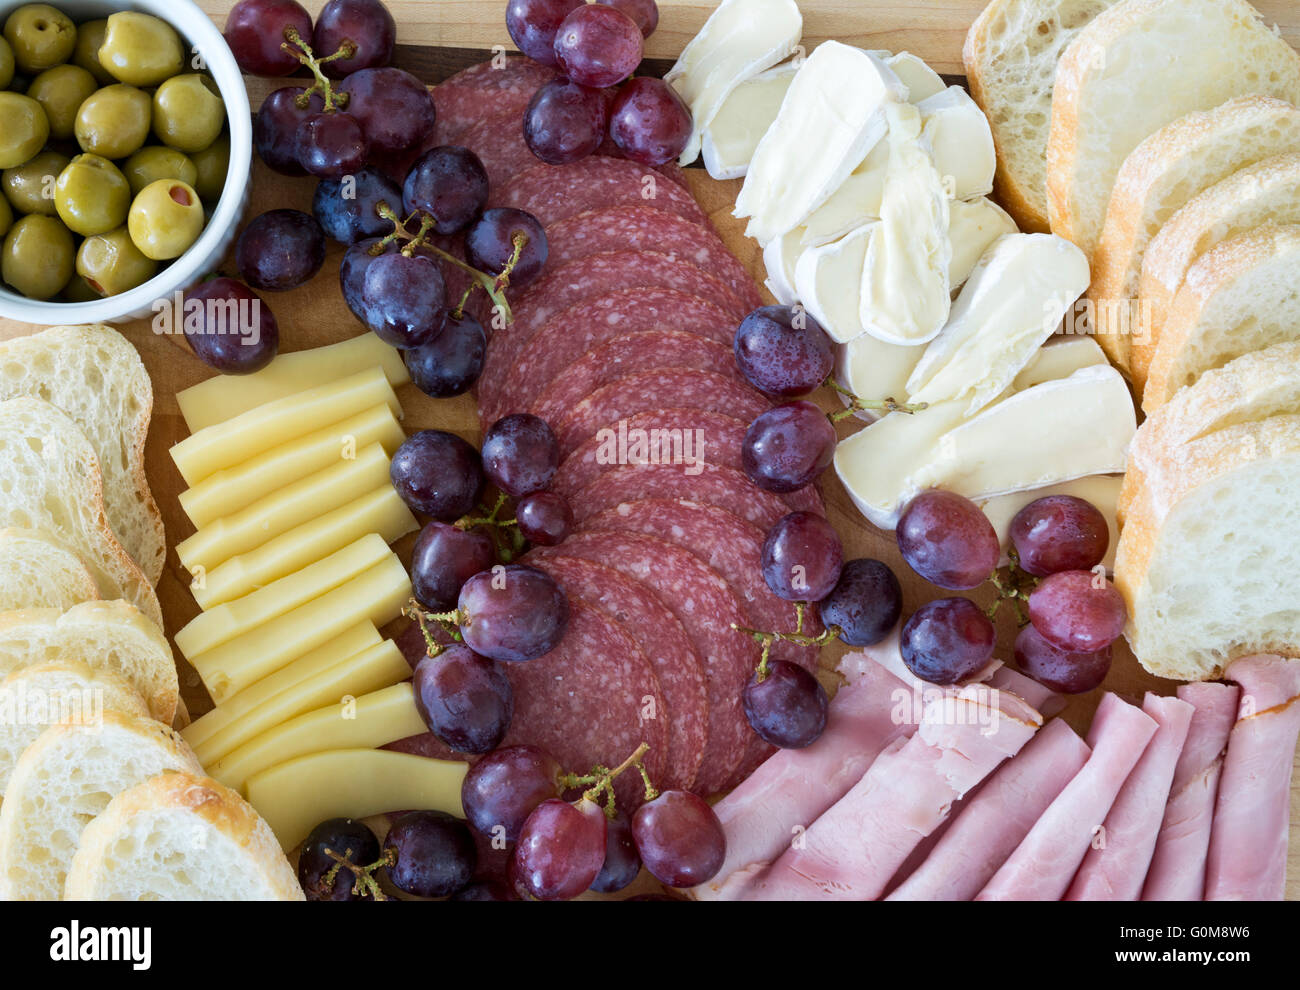 Charcuterie platter with meats, cheeses, bread and olives.  Meat and cheese deli platter with grapes and olives. - Stock Image